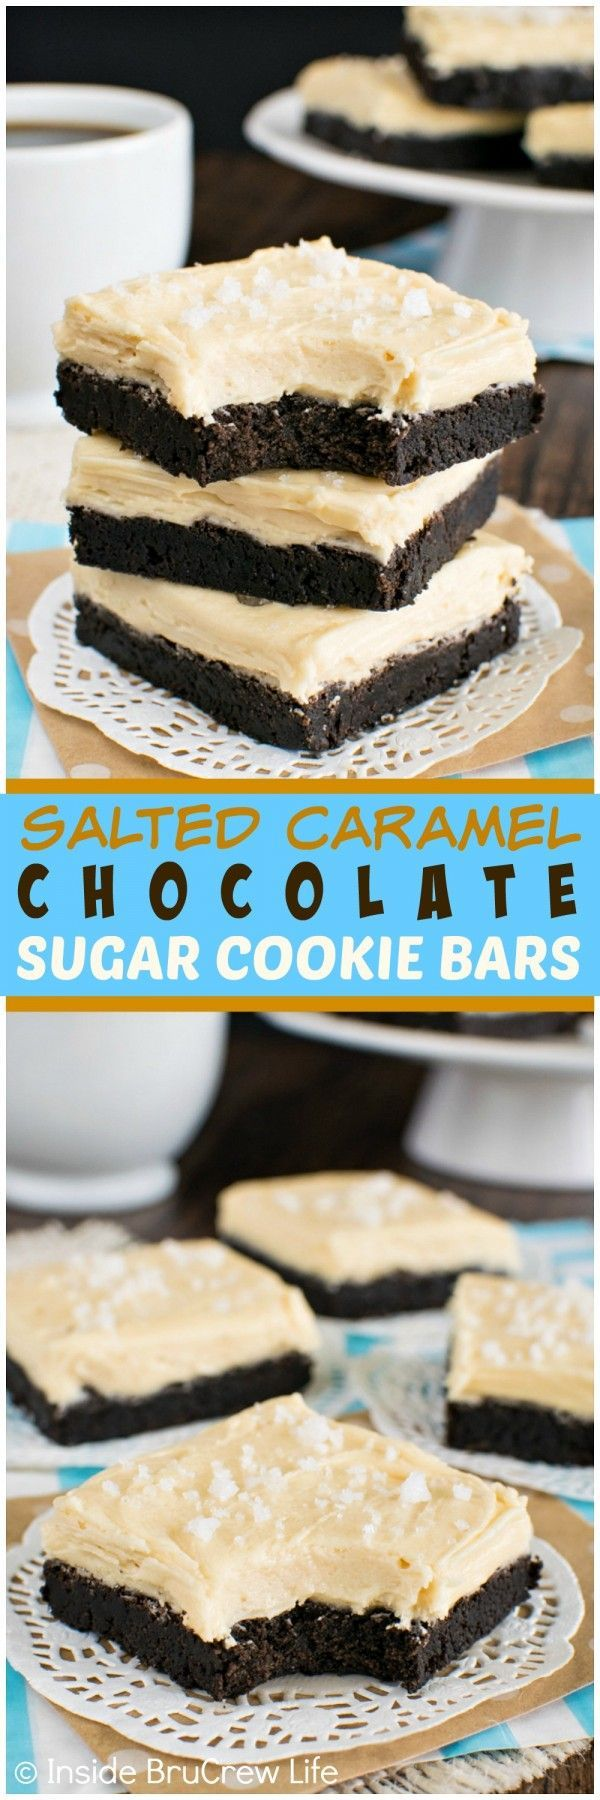 Salted Caramel Chocolate Sugar Cookie Bars - these soft chocolate cookies are baked and frosted in one pan!  Great easy dessert recipe!!! (Halloween Dessert Recipes)